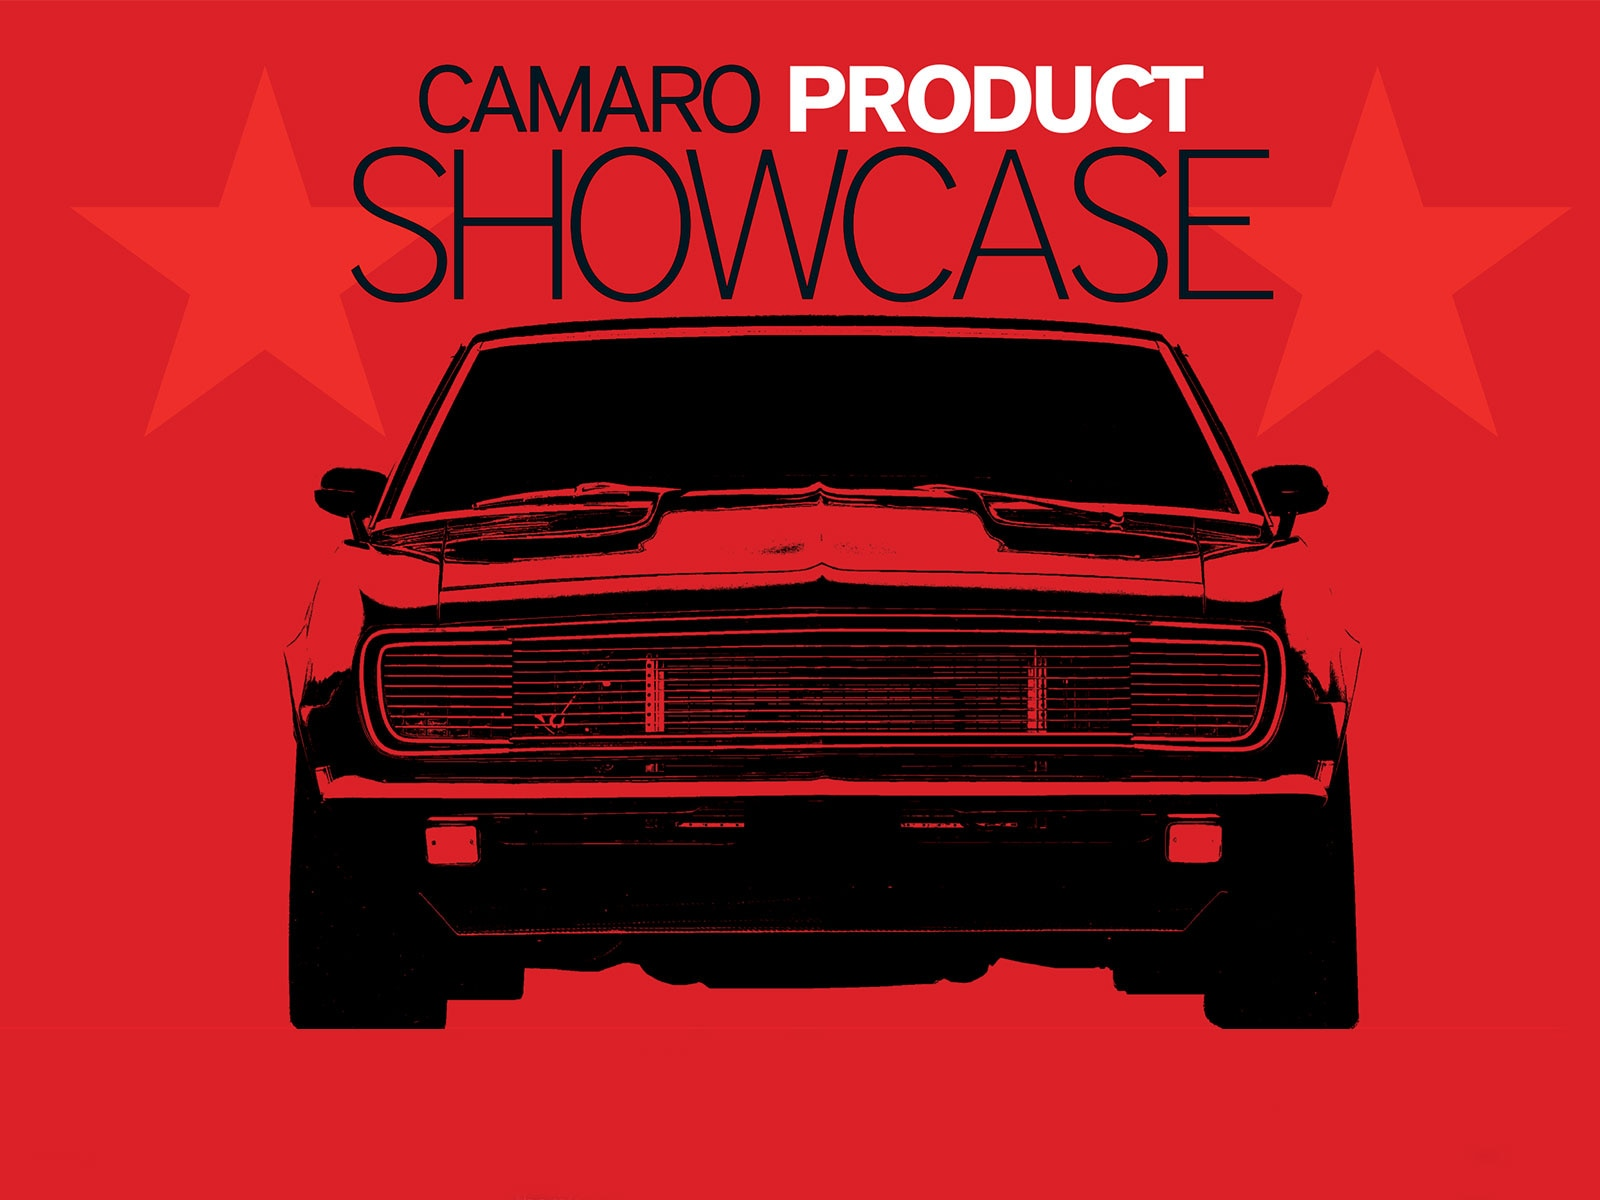 Chevy Camaro Product Showcase